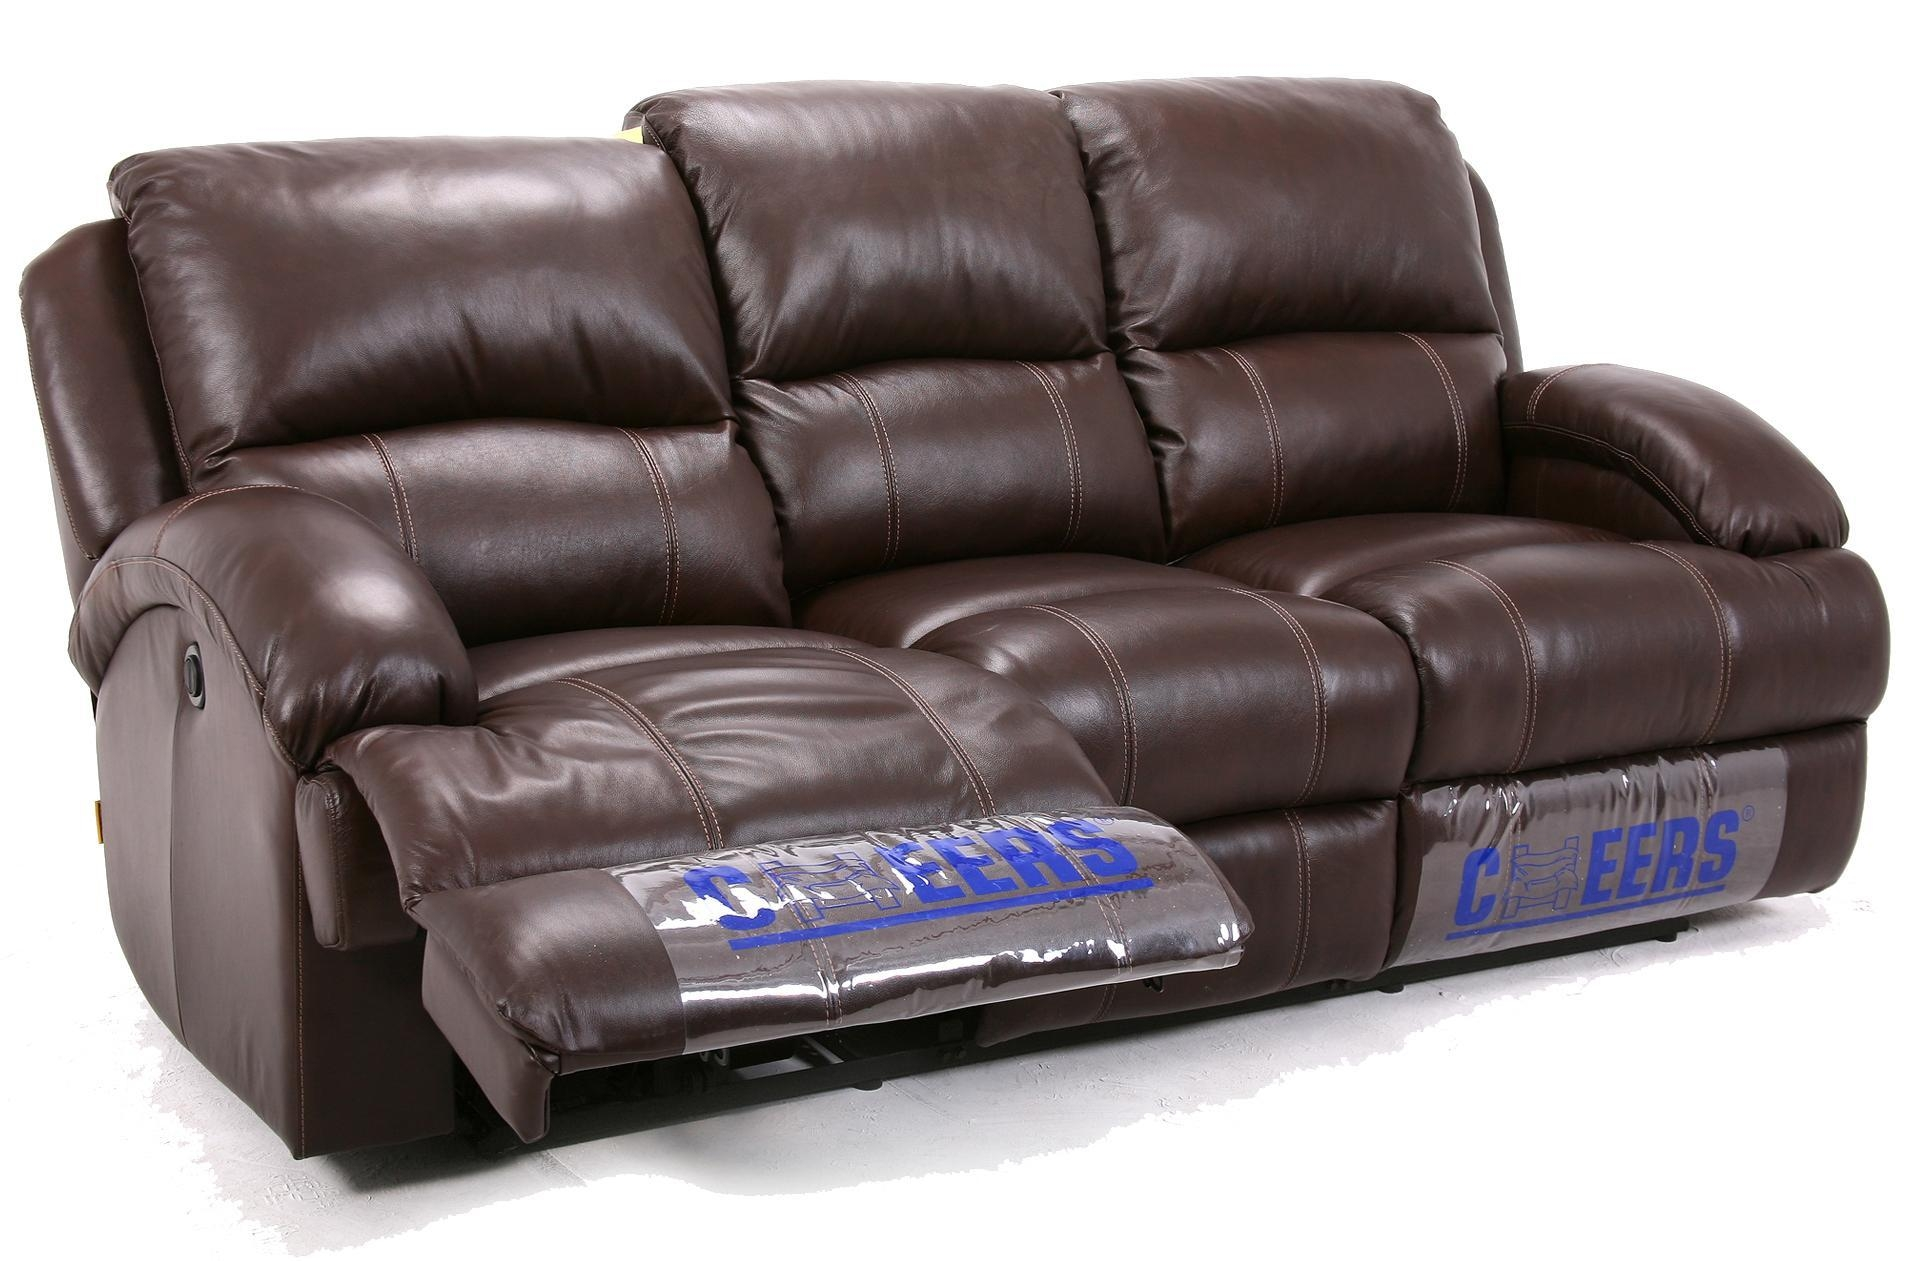 Cheers Leather Sofa 58 With Cheers Leather Sofa | Jinanhongyu Pertaining To Cheers Leather Sofas (Image 6 of 20)